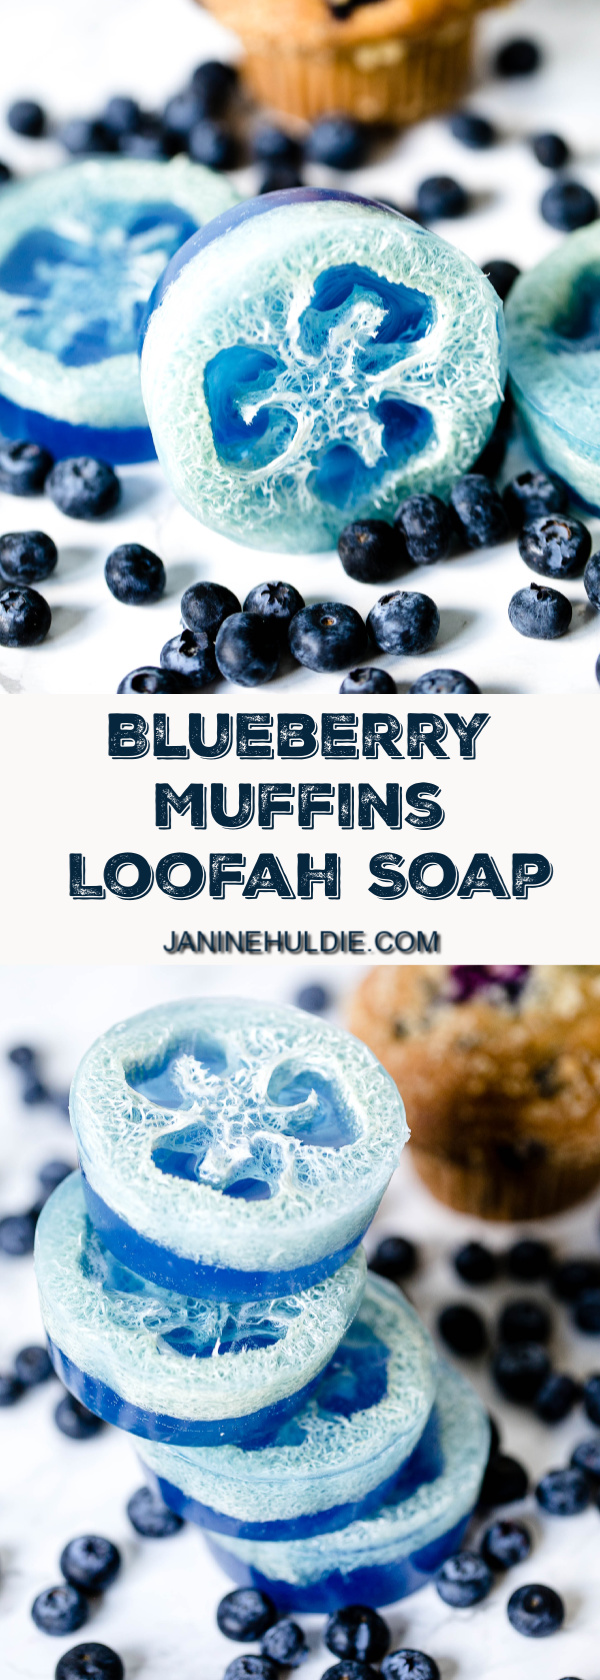 Blueberry Muffins Loofah, This Mom's Confessions